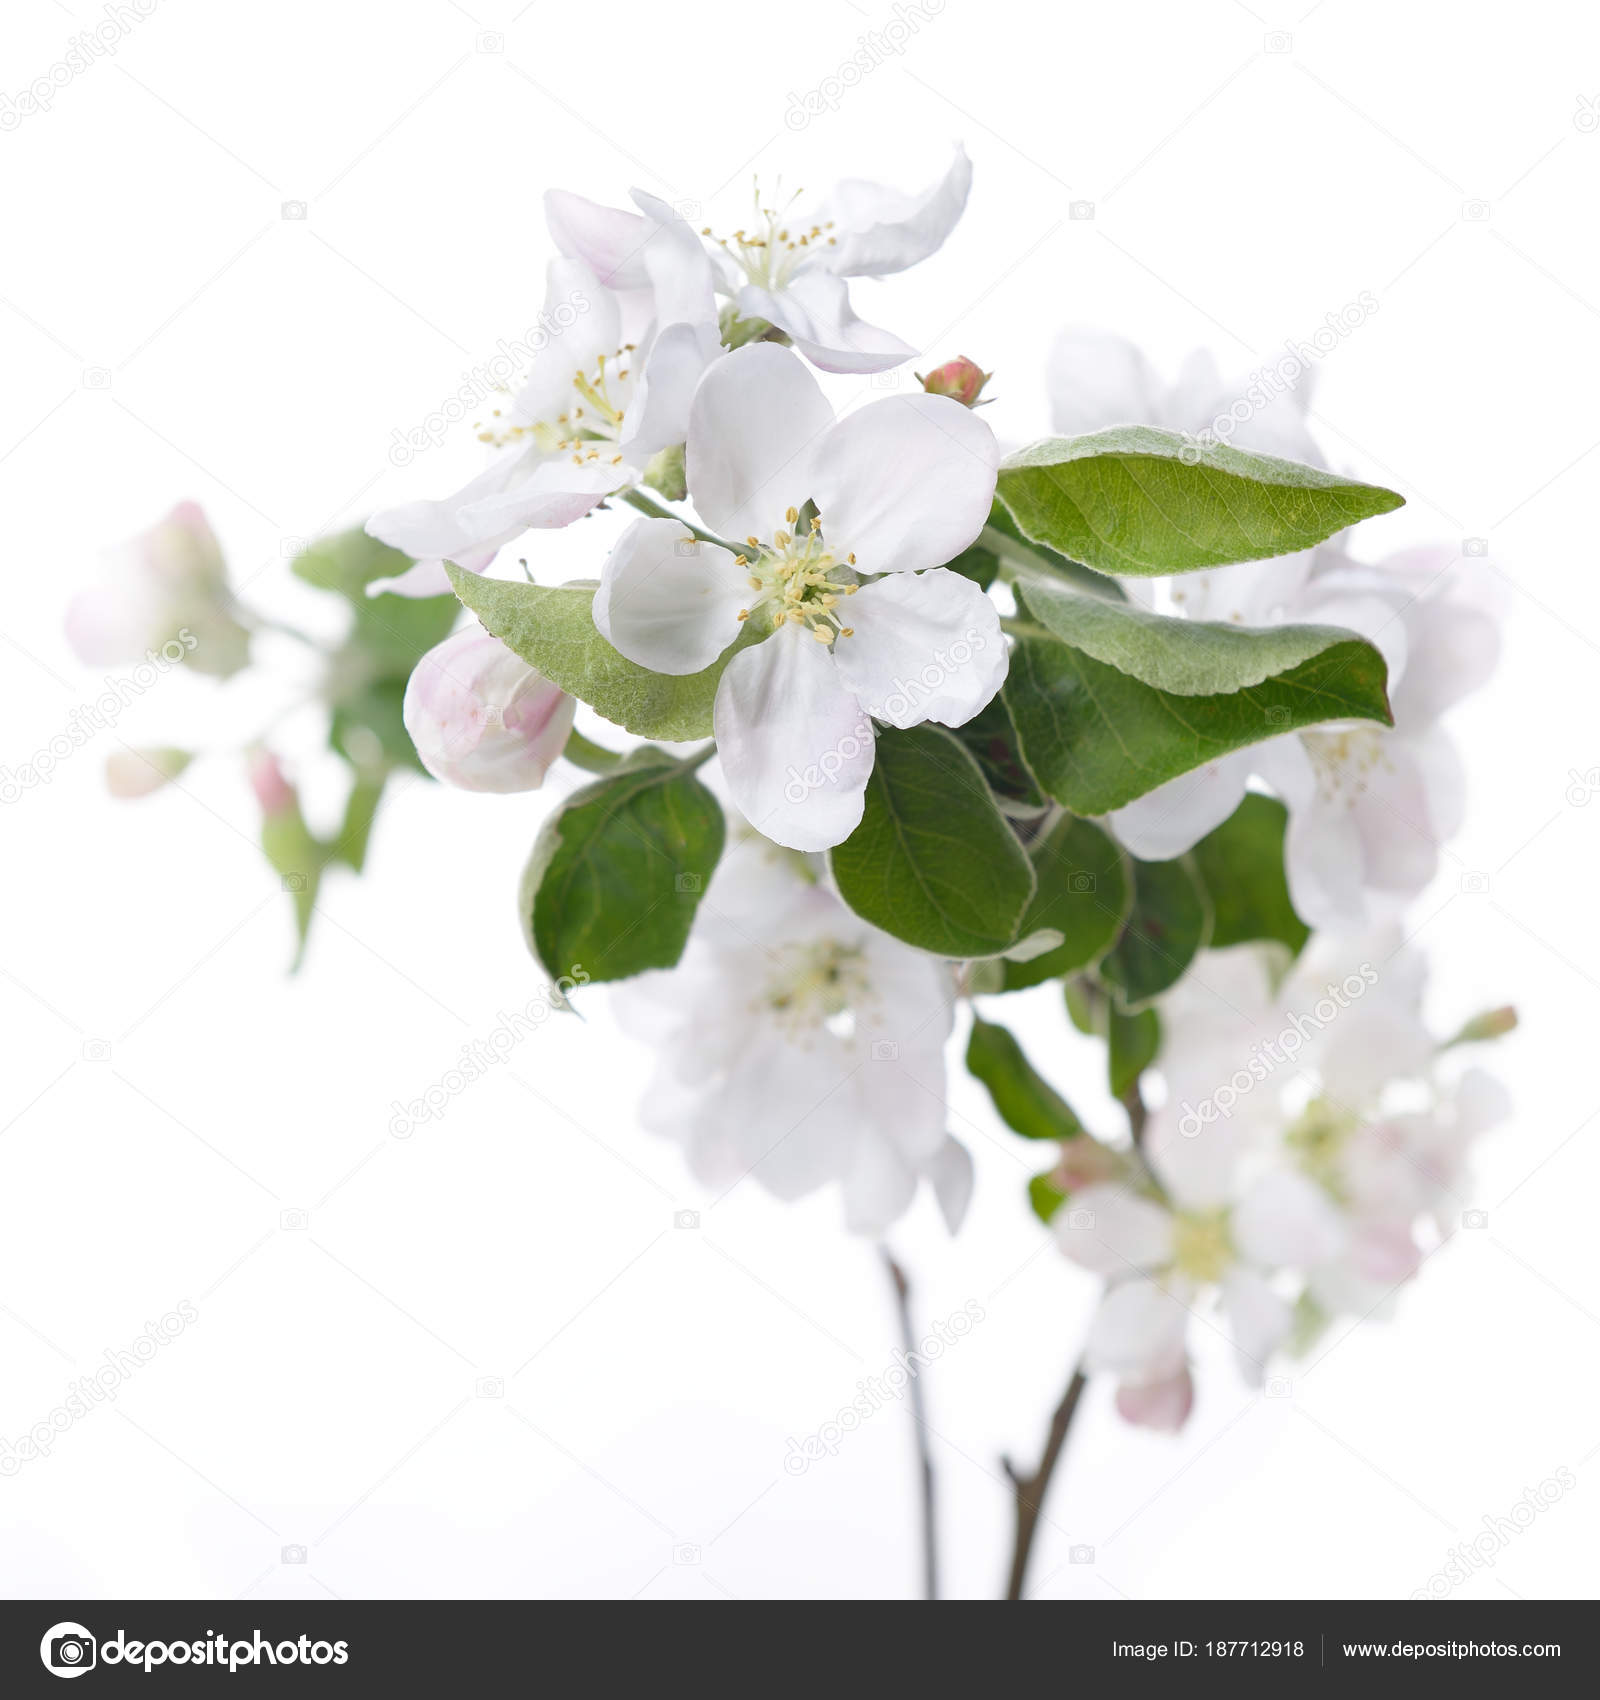 Apple Blossoms Blooming Apple Tree Branch With Large White Flow